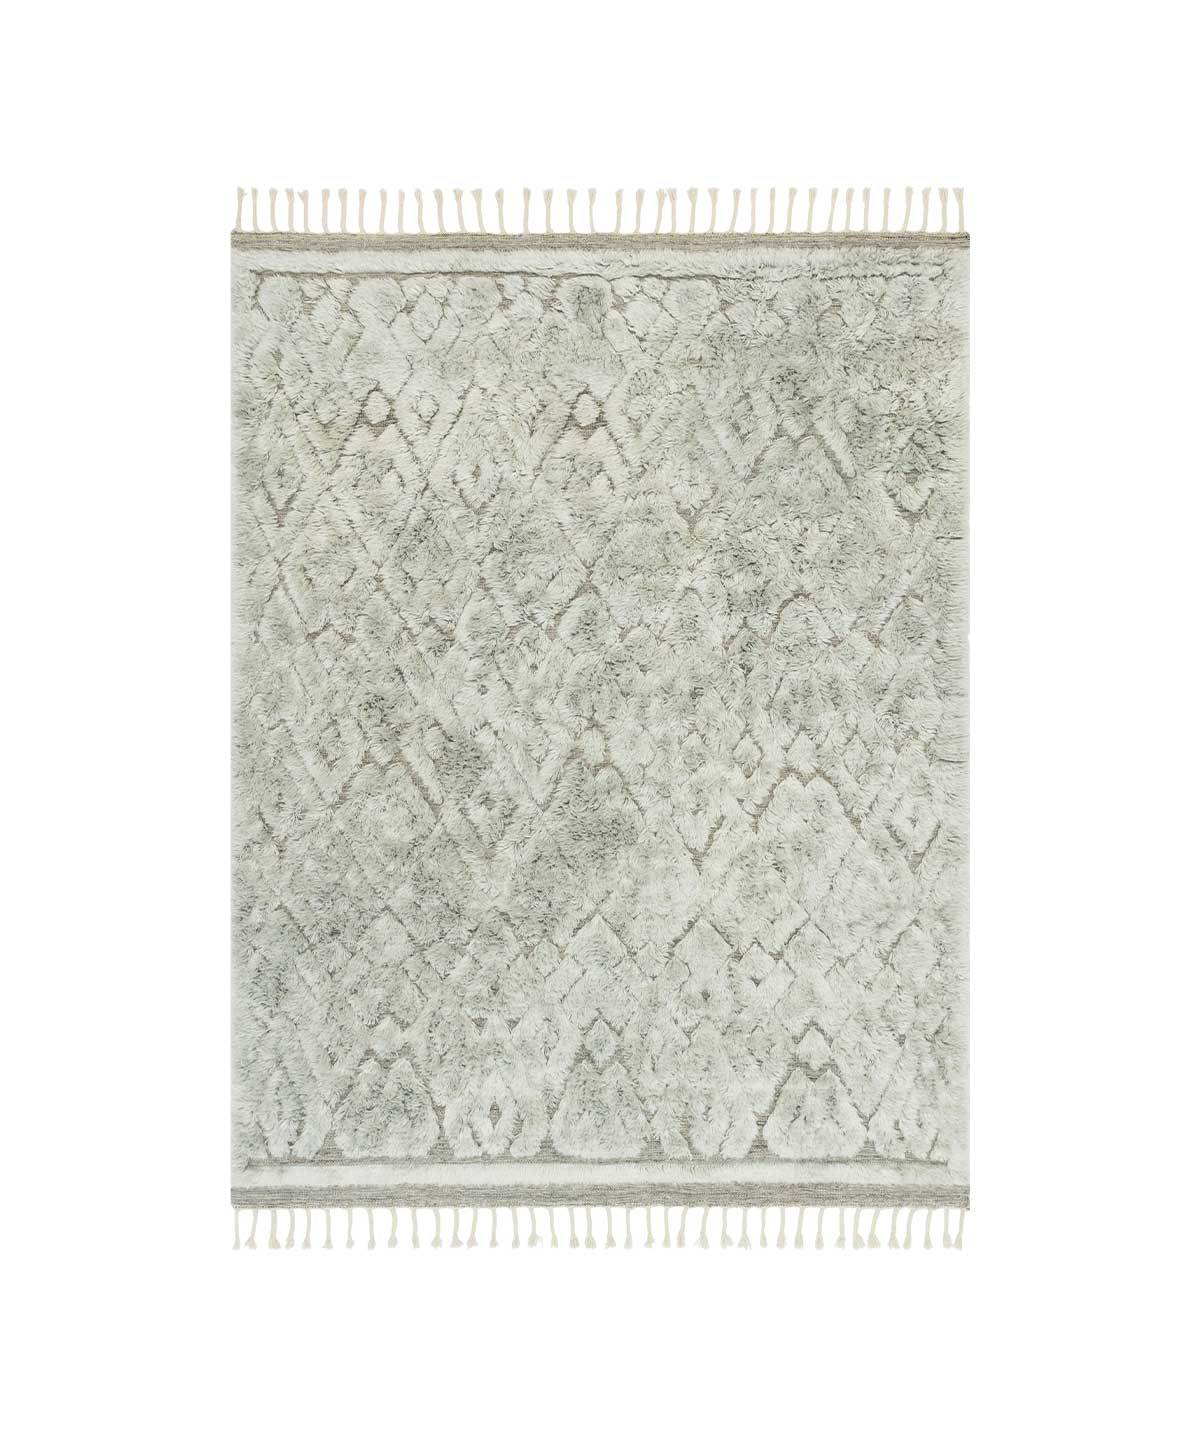 Hygge Rug in Grey / Mist by Loloi | TRNK